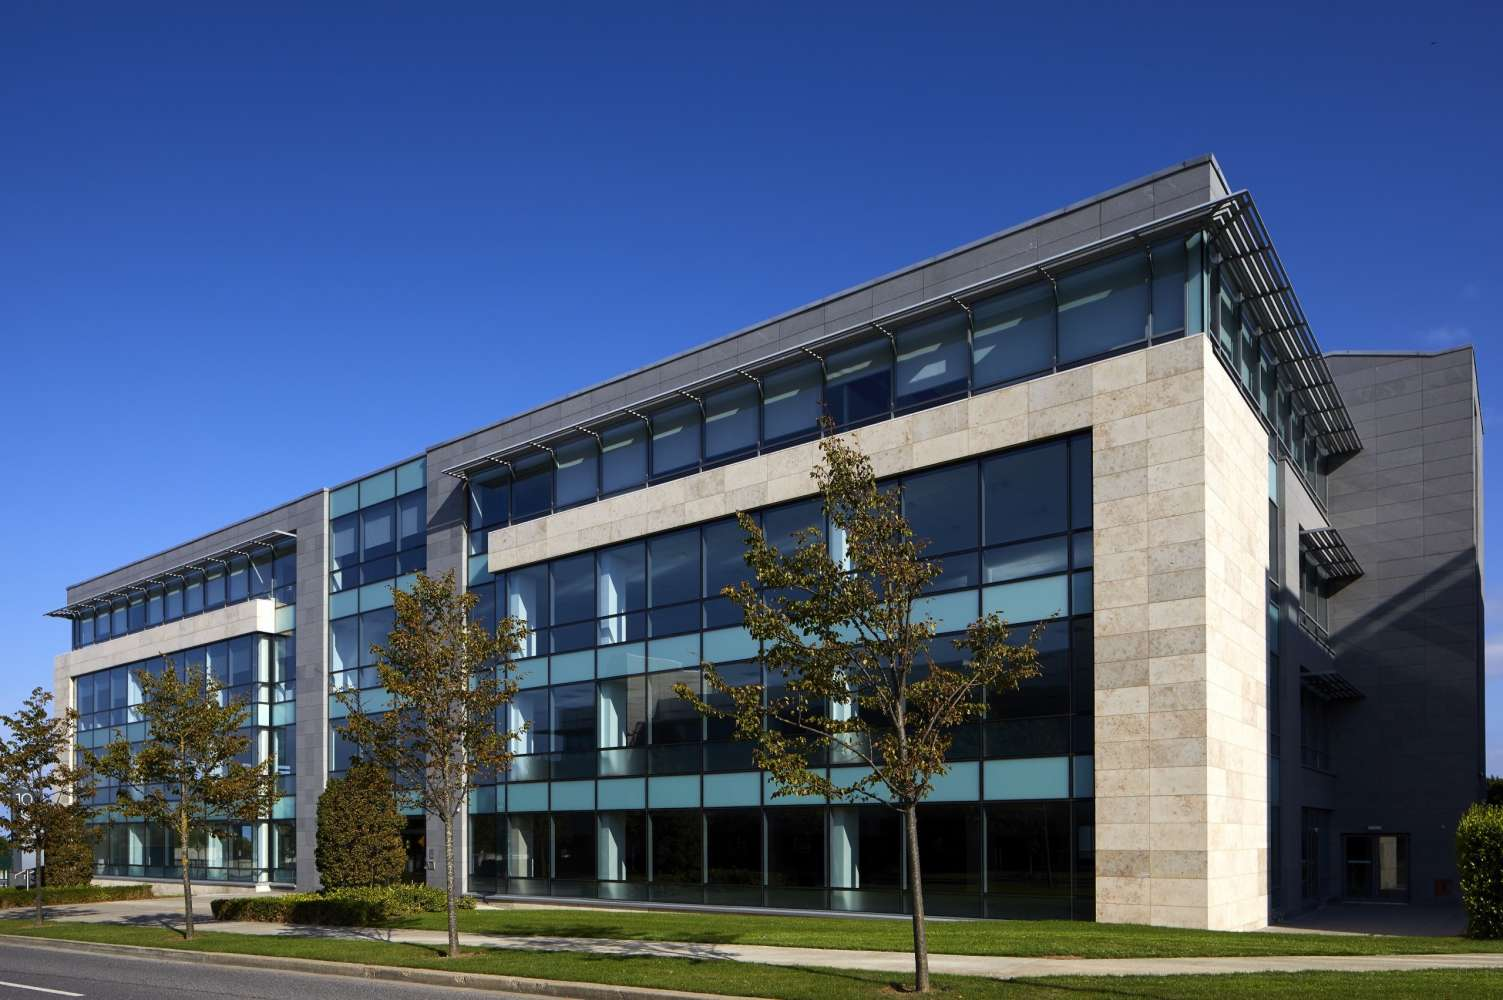 Office Co dublin, D18 T3Y1 - Building 10, The Campus, Cherrywood